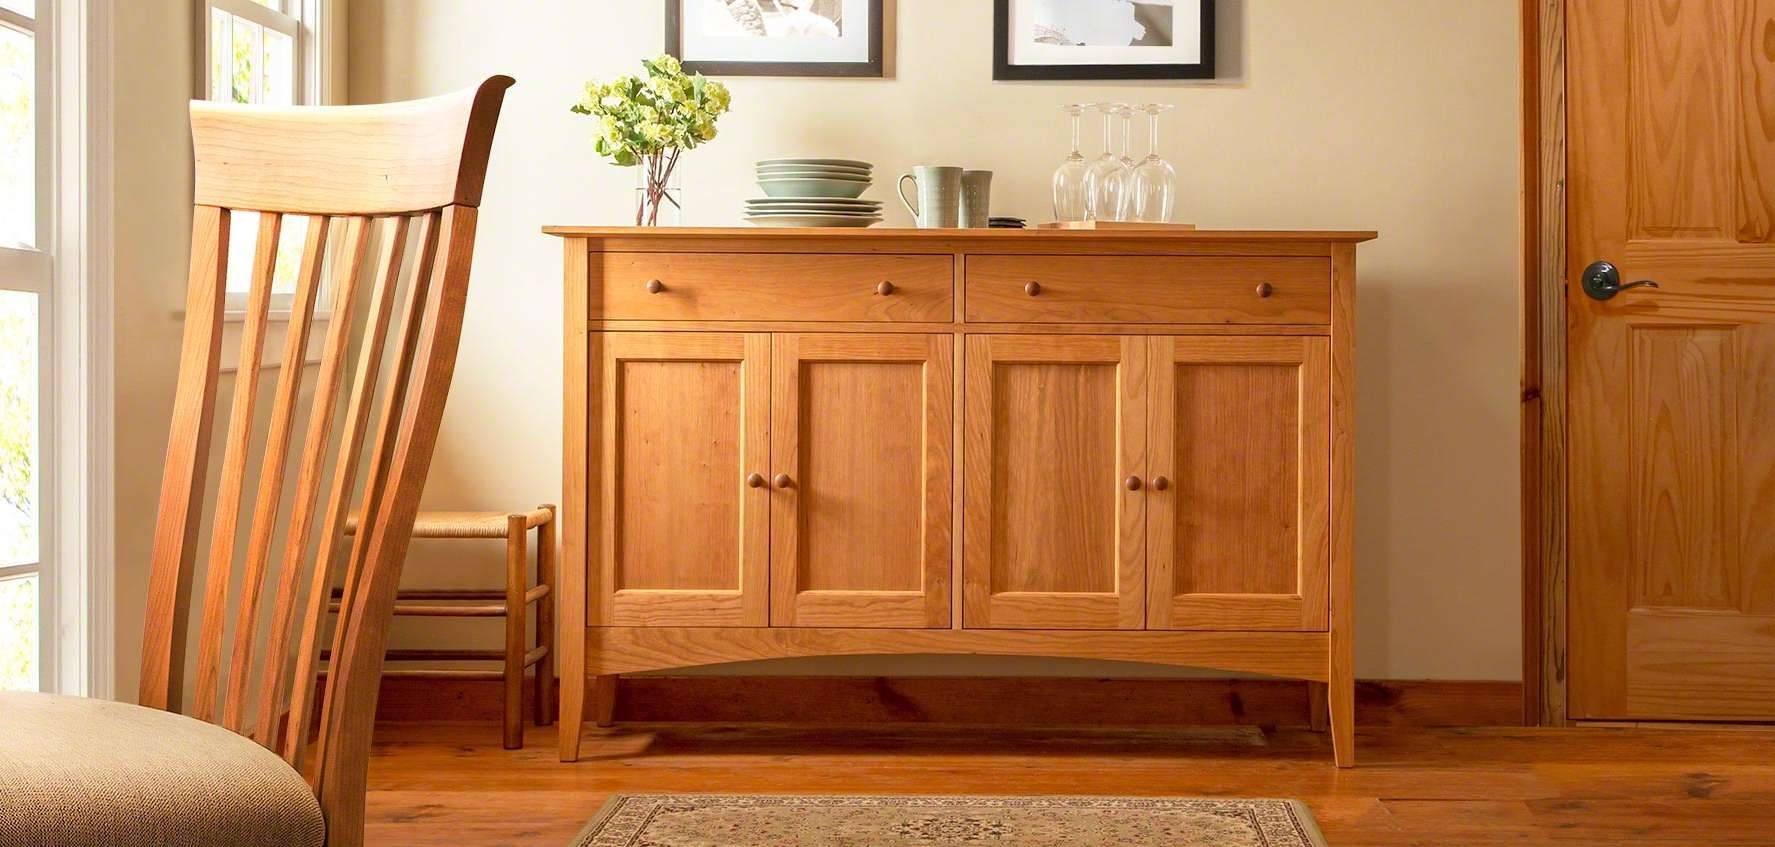 Solid Wood Sideboards, Buffets, & Hutches – Vermont Woods Studios Within Wooden Sideboards And Buffets (View 13 of 20)